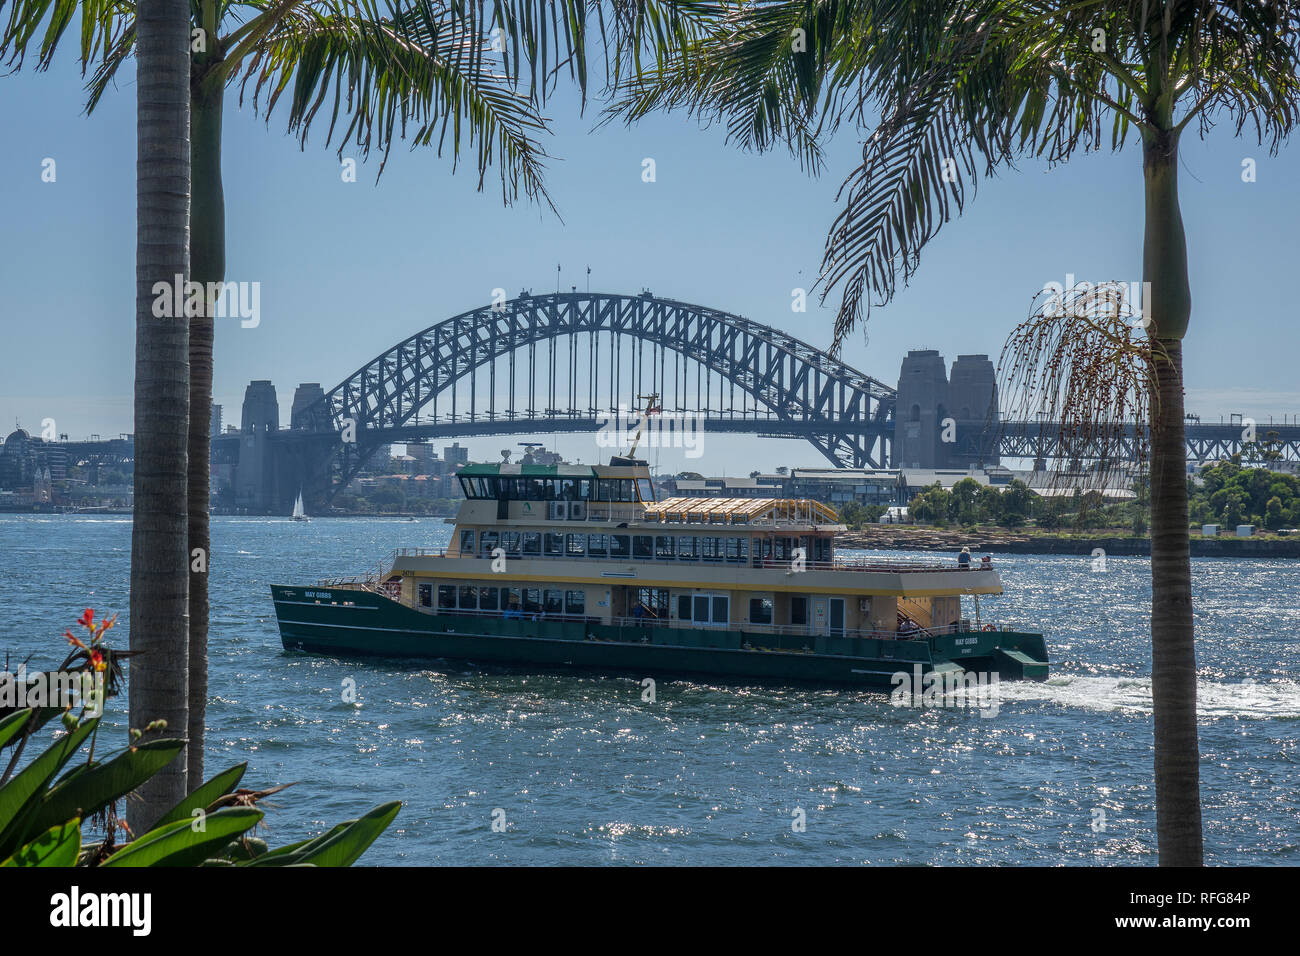 Australia, New South Wales, Sydney, Balmain, view of bridge across Darling Harbour - Stock Image